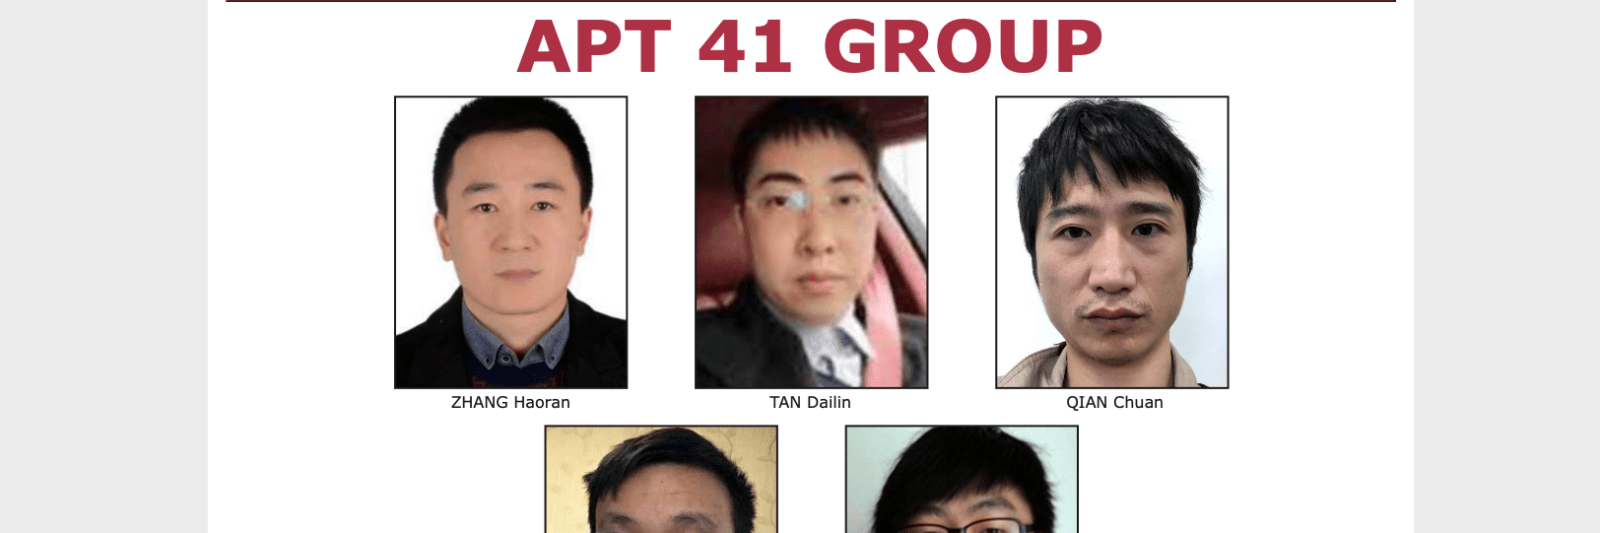 U.s. Charges 7 Alleged State Sanctioned Chinese Hackers